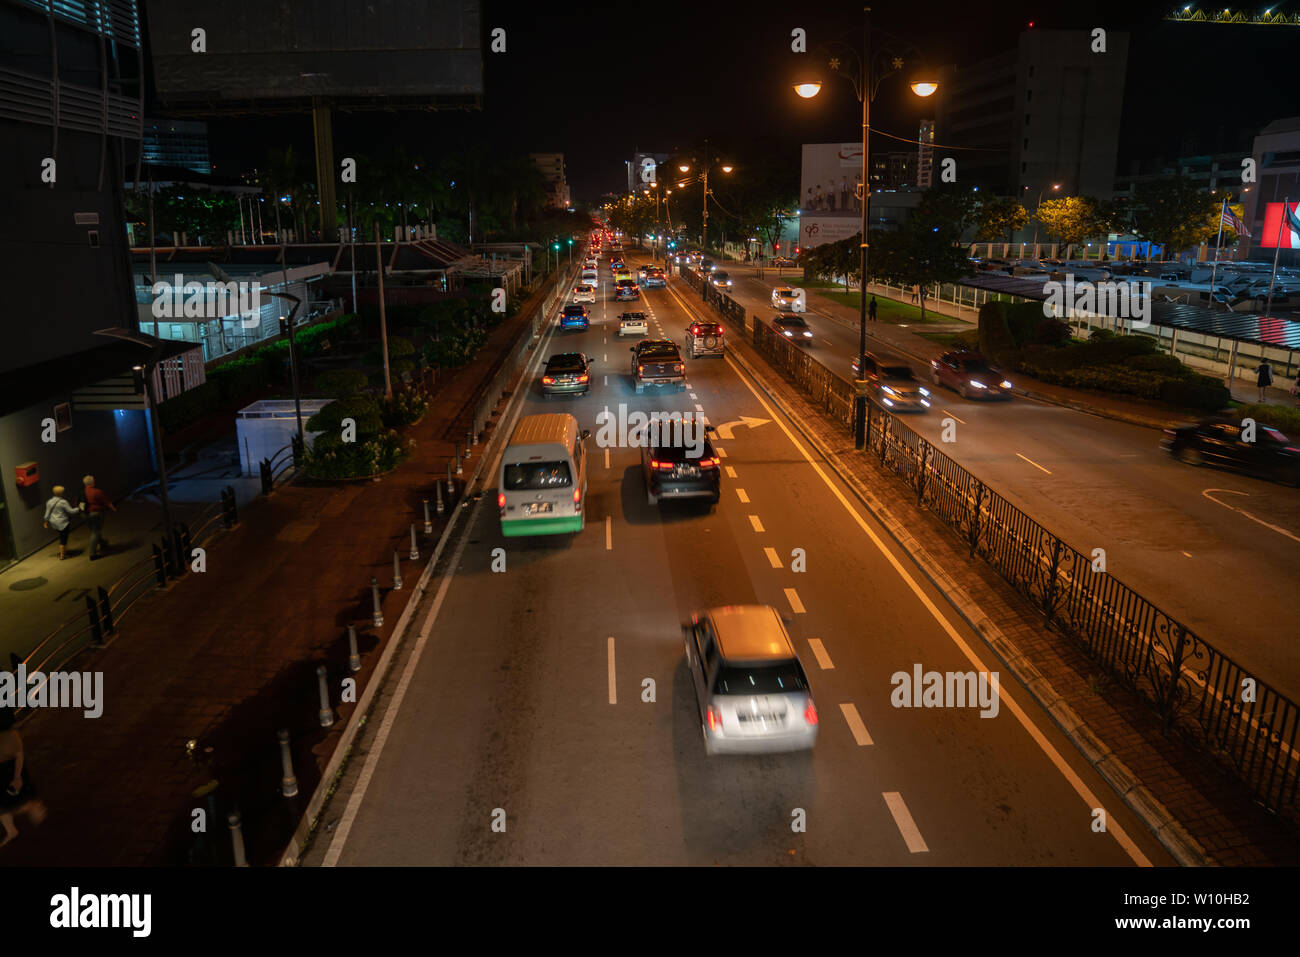 KOTA KINABALU BORNEO - JUNE 1 2019; Street scene with neon and moving vehicles blurred in motion on long street  high point of view. - Stock Image